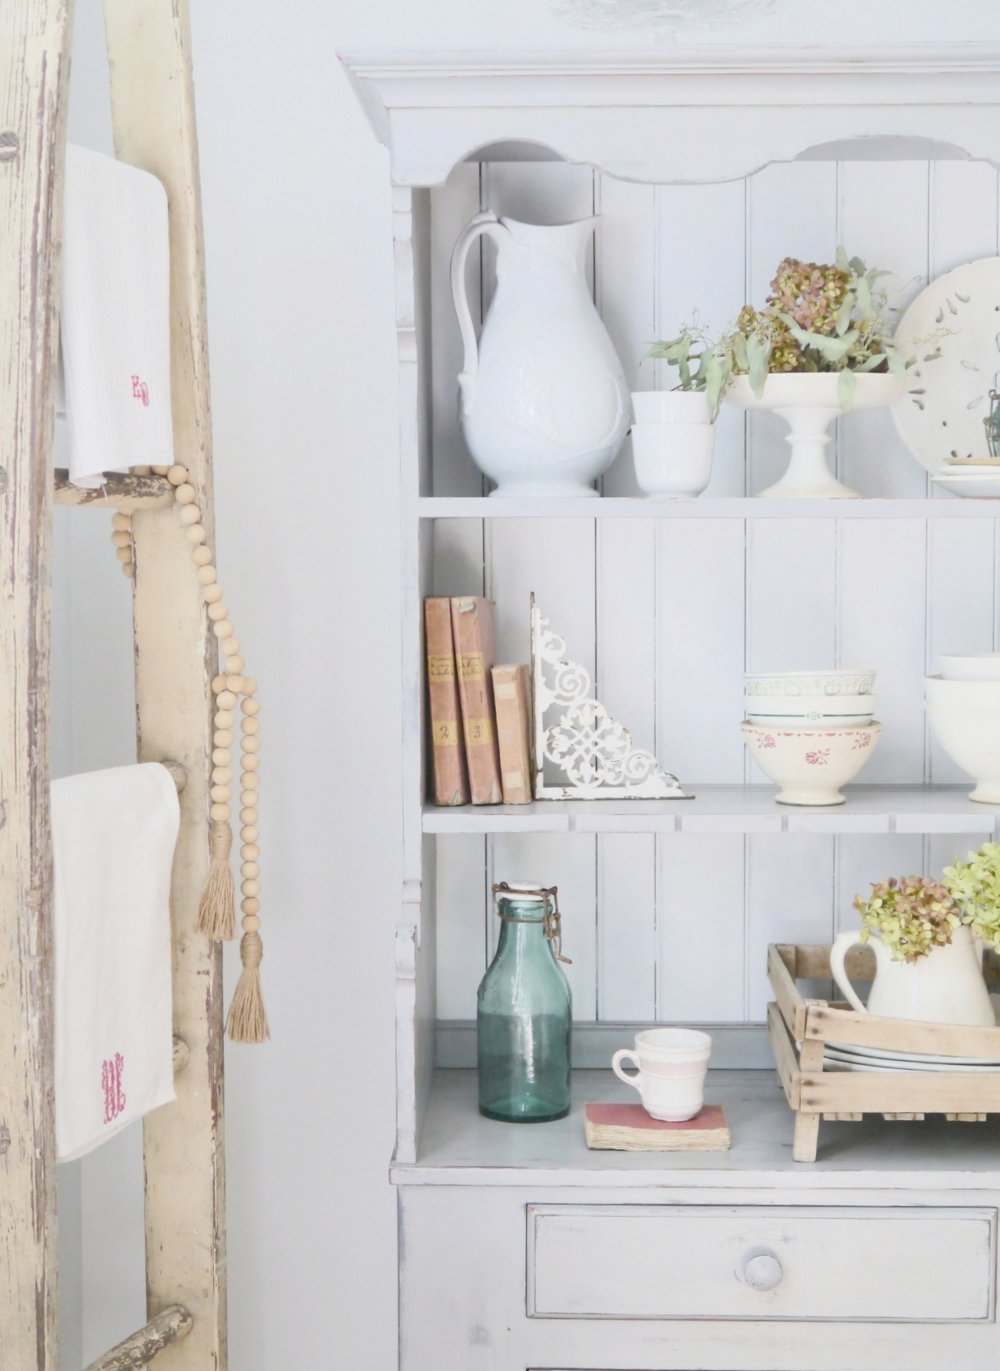 Rare Corners provides home decor and styling services in South Jersey. Work with us today or shop our showroom for the best vintage finds in Haddonfield, NJ